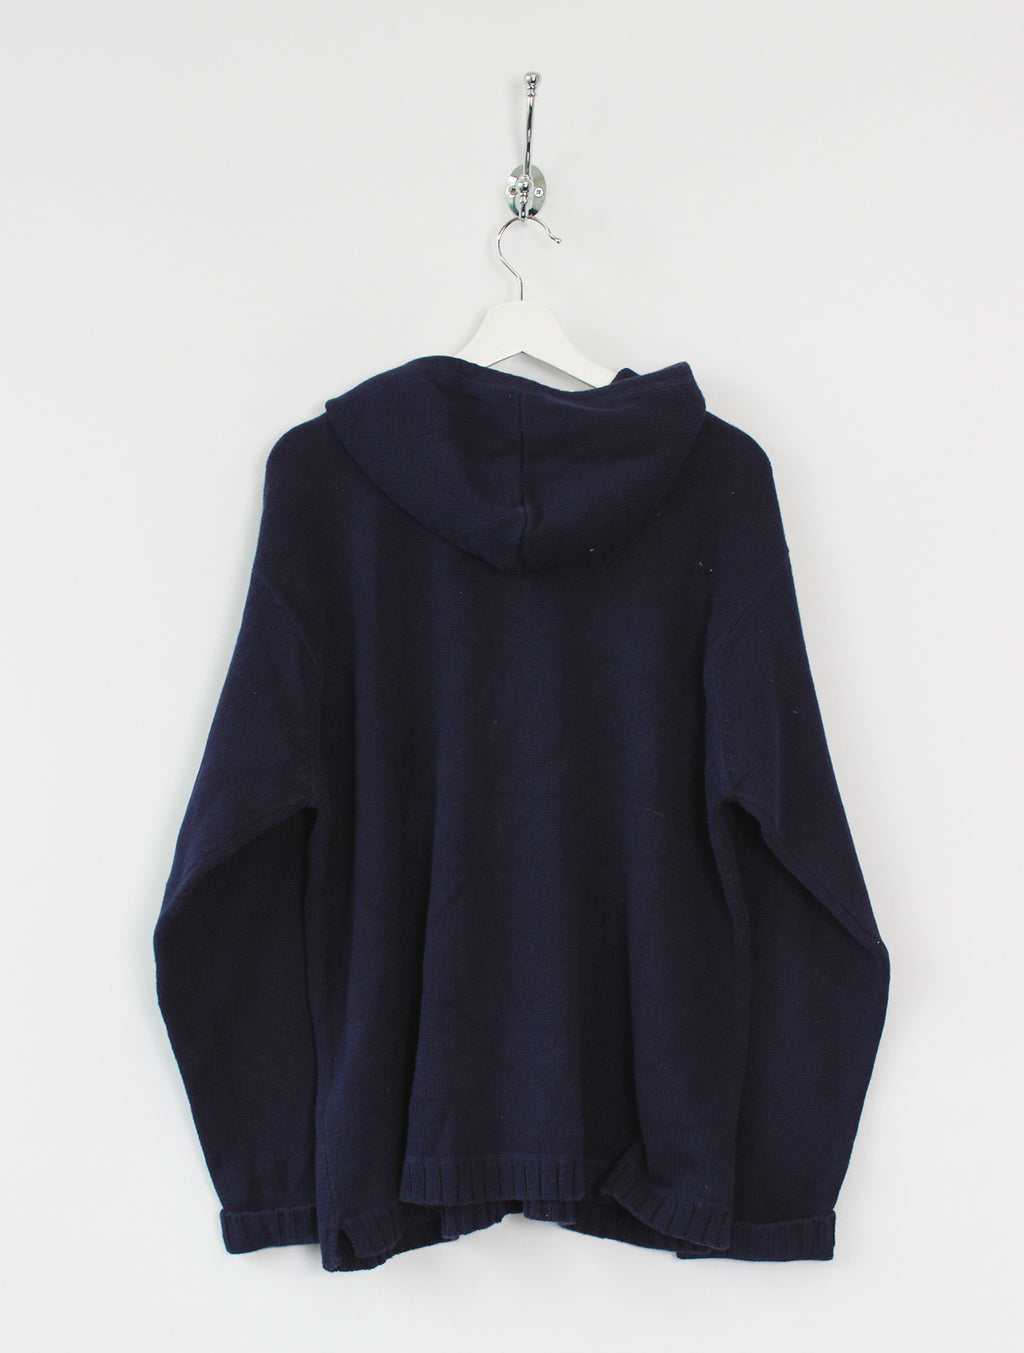 Tommy Hilfiger Knitted Jumper Hoodie (XL)